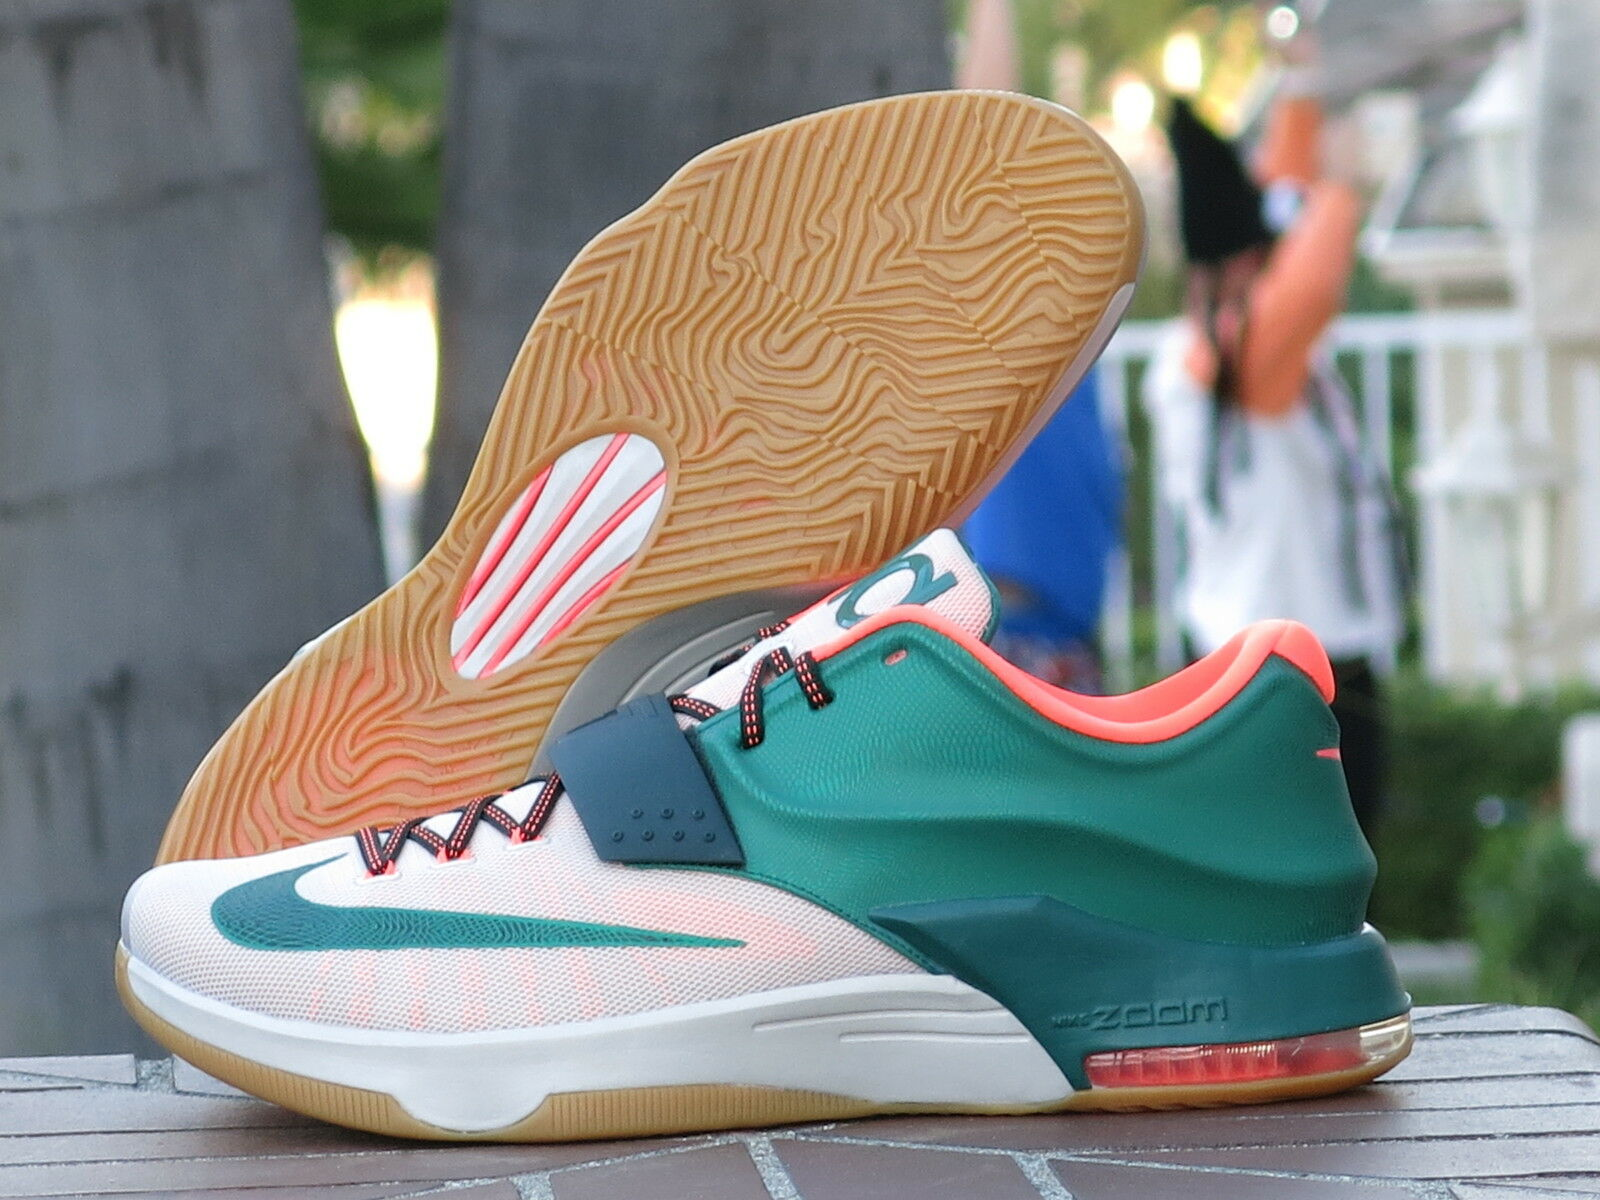 Nike Kevin Durant KD VII 7 Miami Easy  Men's Basketball Shoes 653996-330 SZ 13